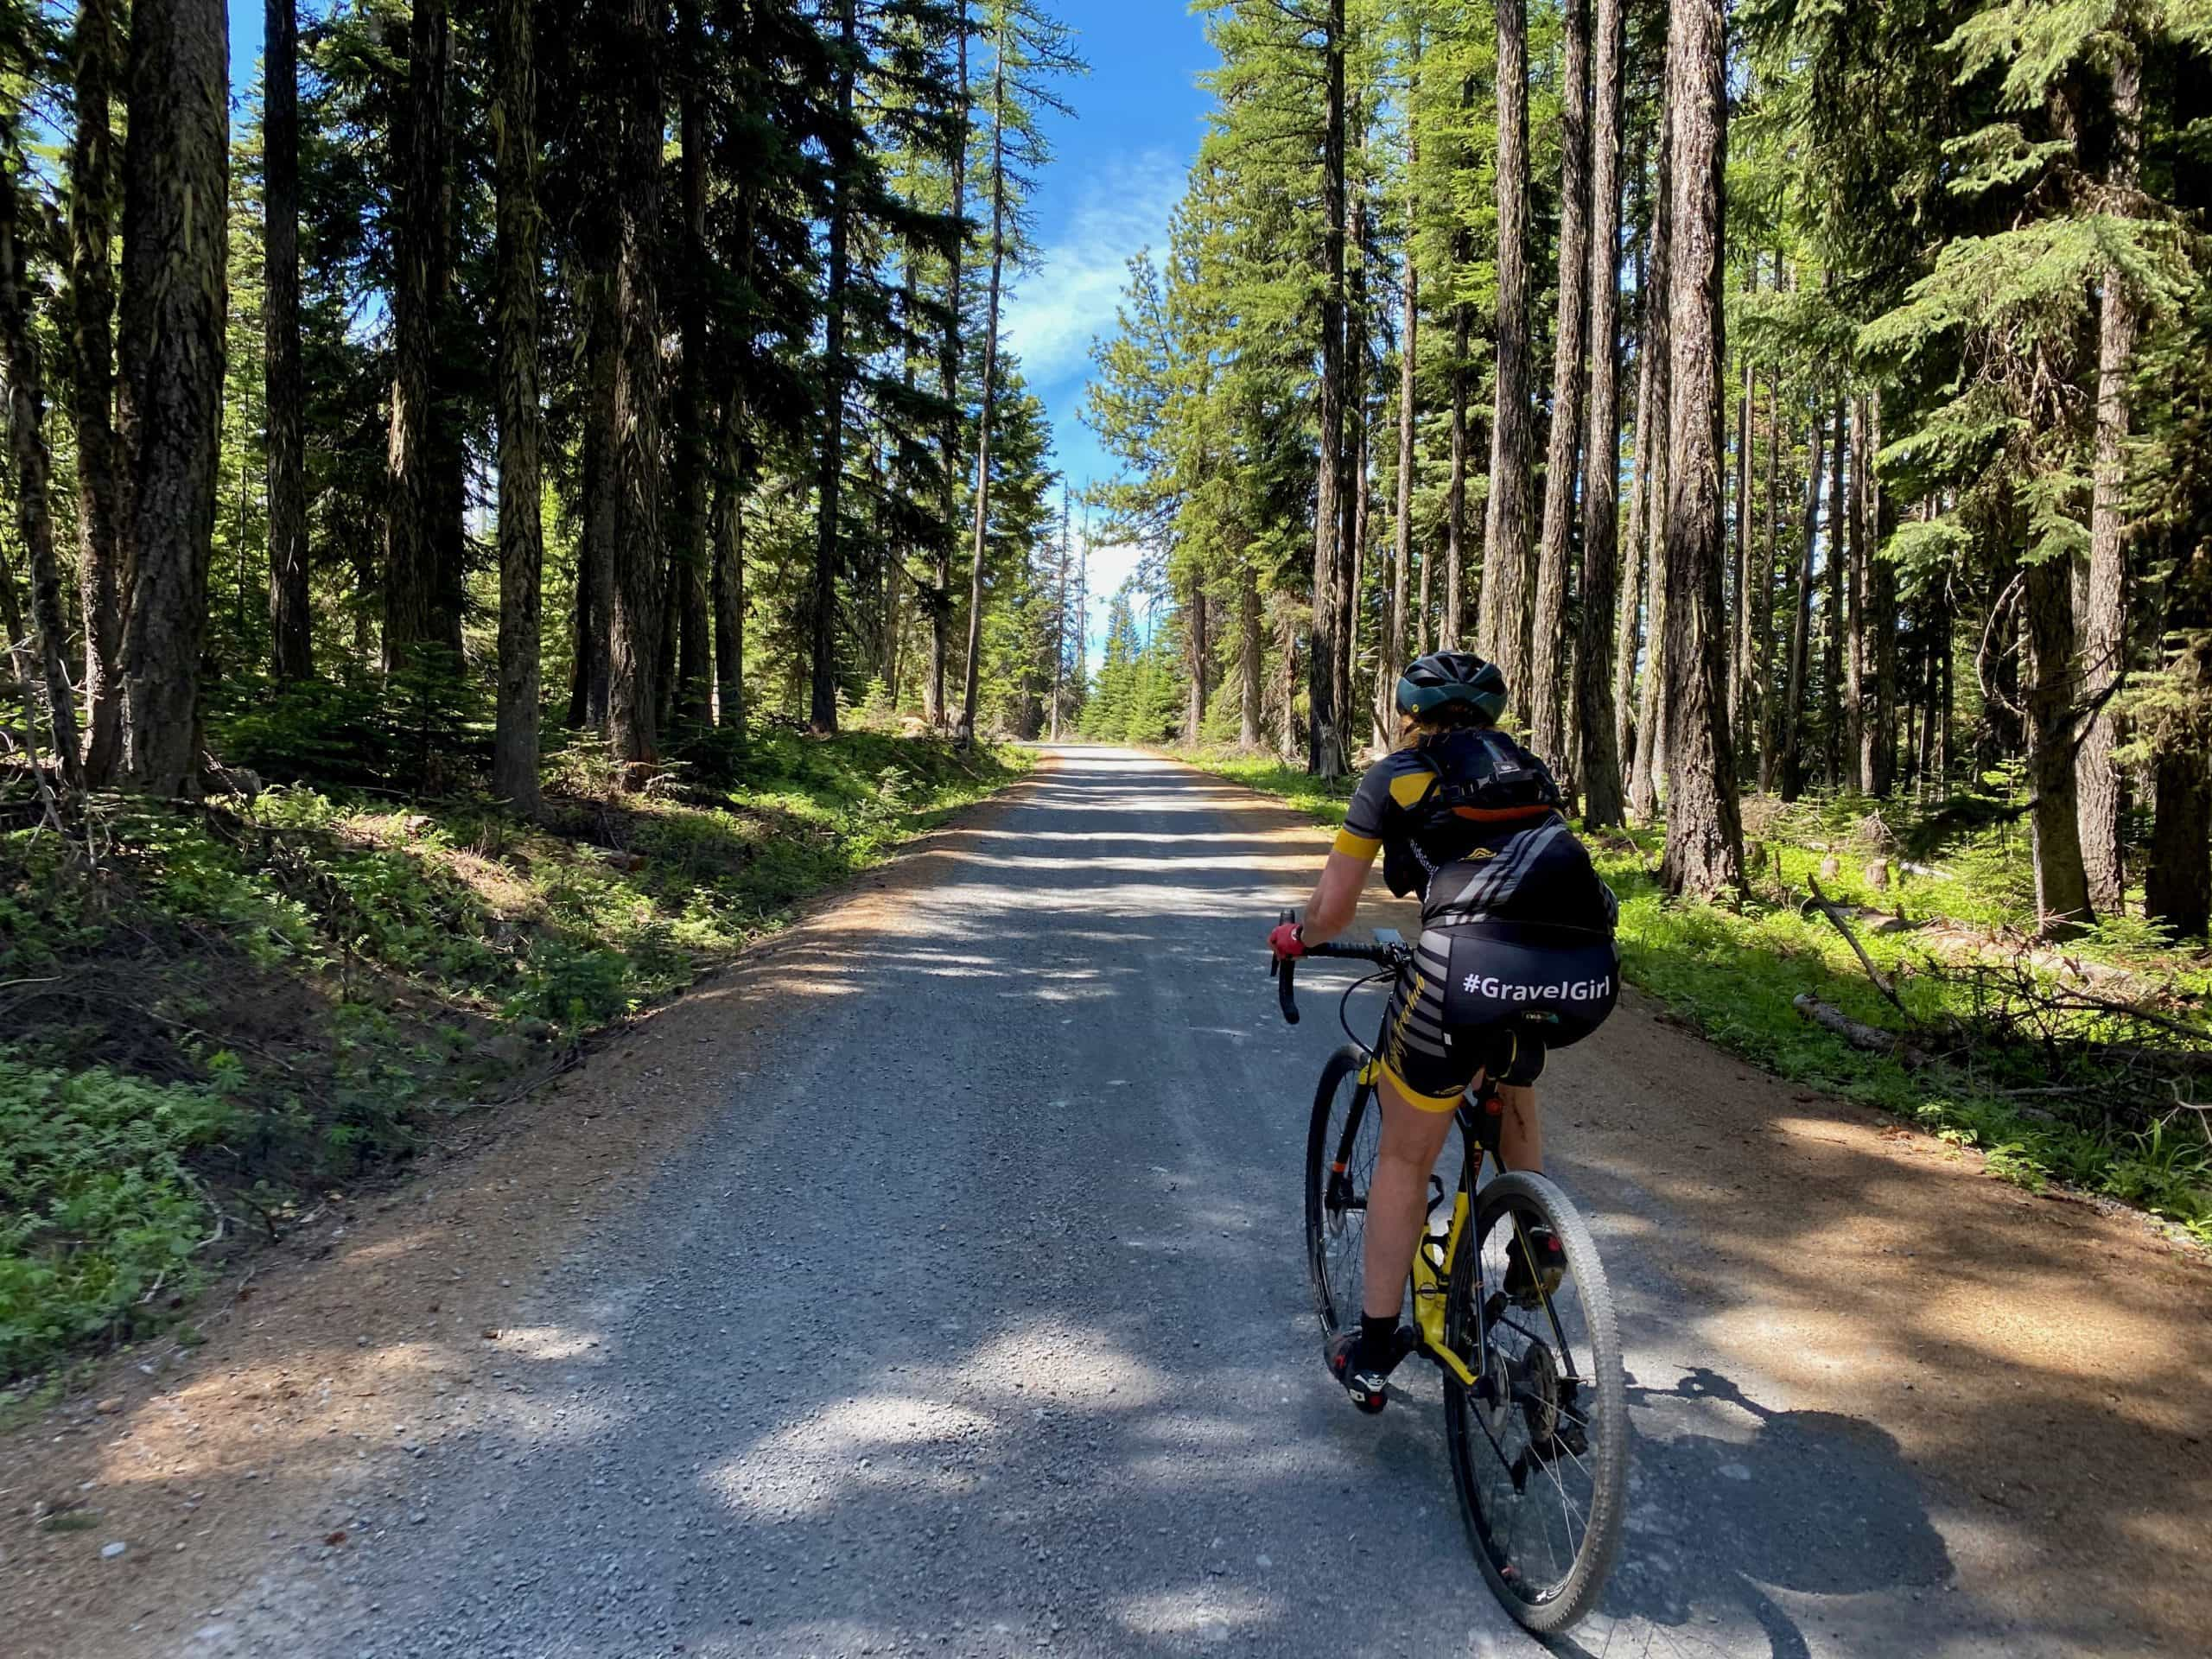 Gravel Girl on Lookout Mountain road near High Plains in Mt Hood National forest.